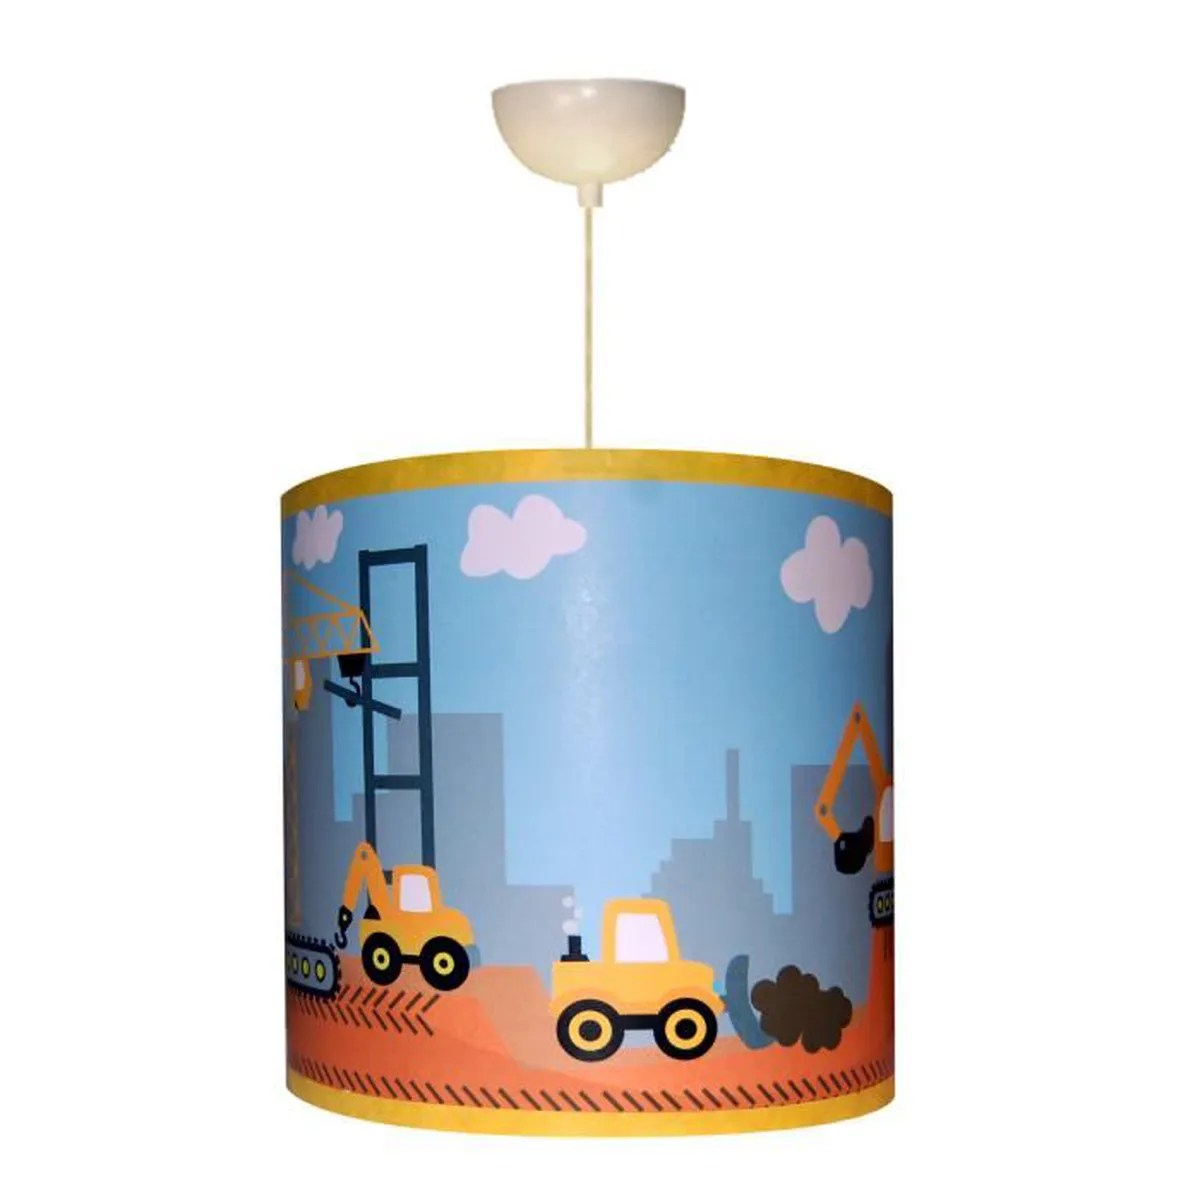 Lampe Suspension Enfant Suspension Enfant Quotchantier En Cours Quot Achat Vente